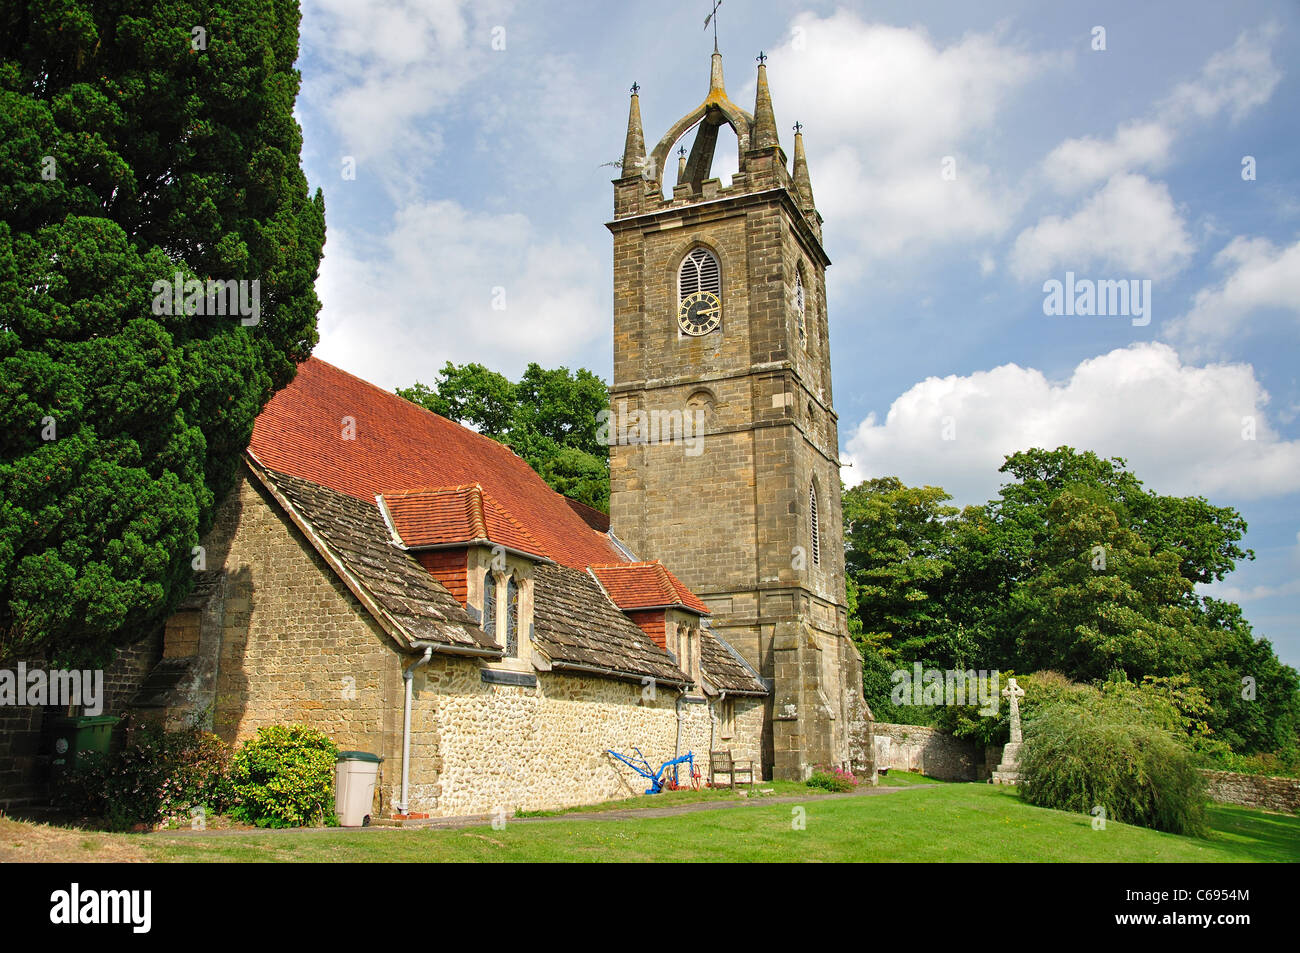 All Hallows Parish Church, Tillington, District of Chichester, West Sussex, England, United Kingdom Stock Photo